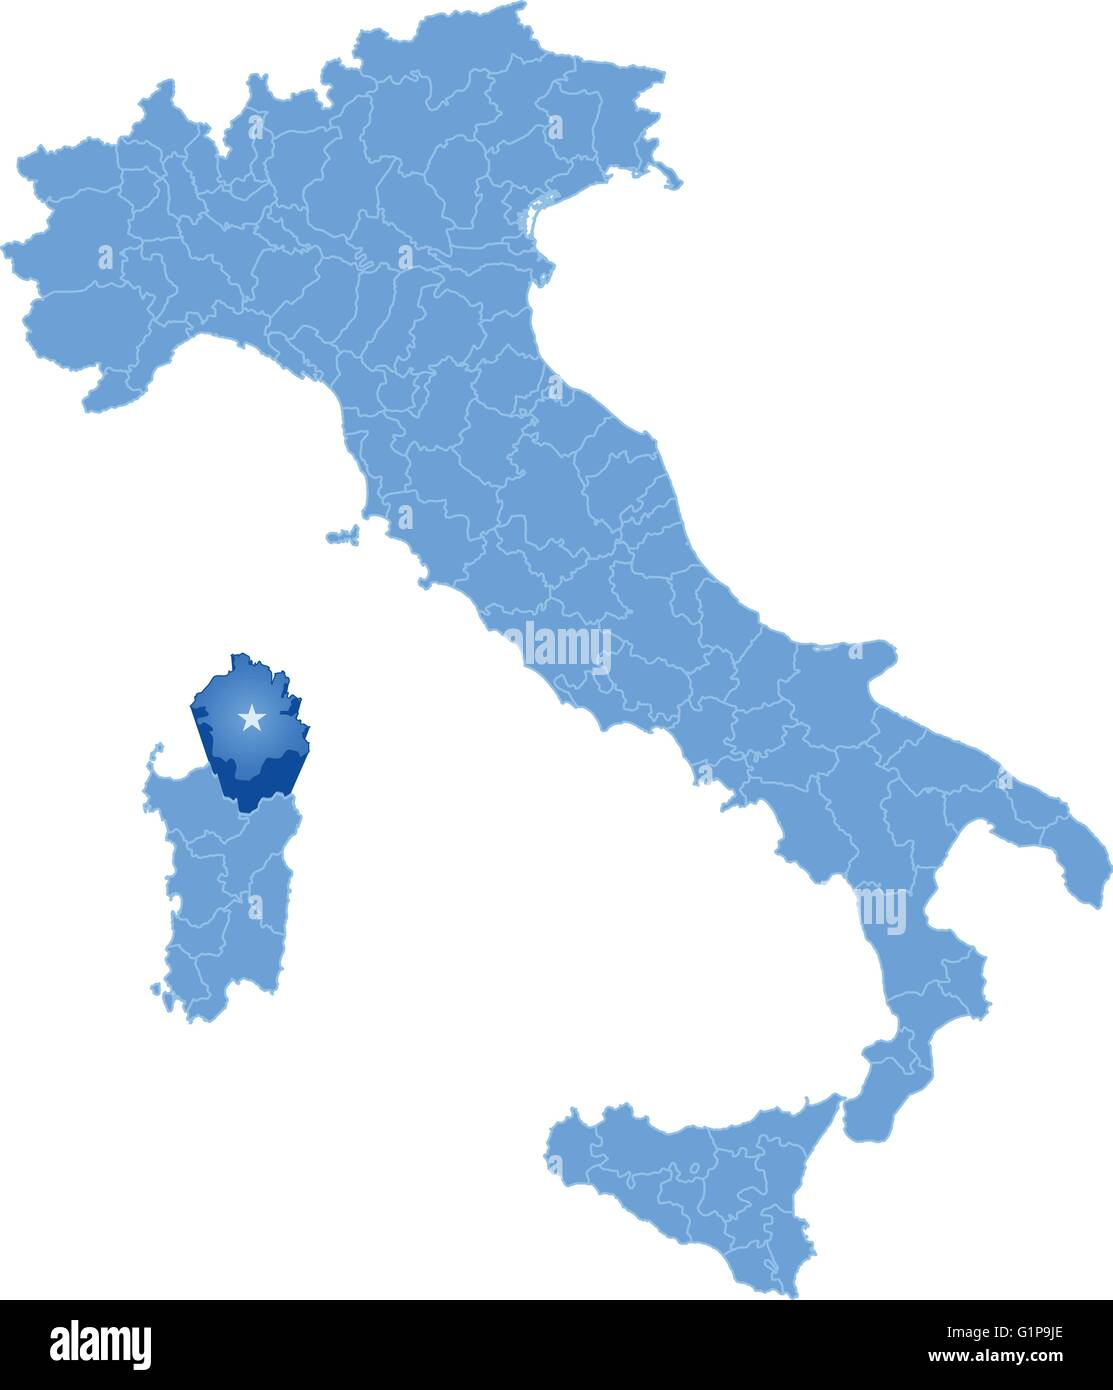 Map of Italy where Olbia-Tempio province is pulled out, isolated on white background - Stock Image